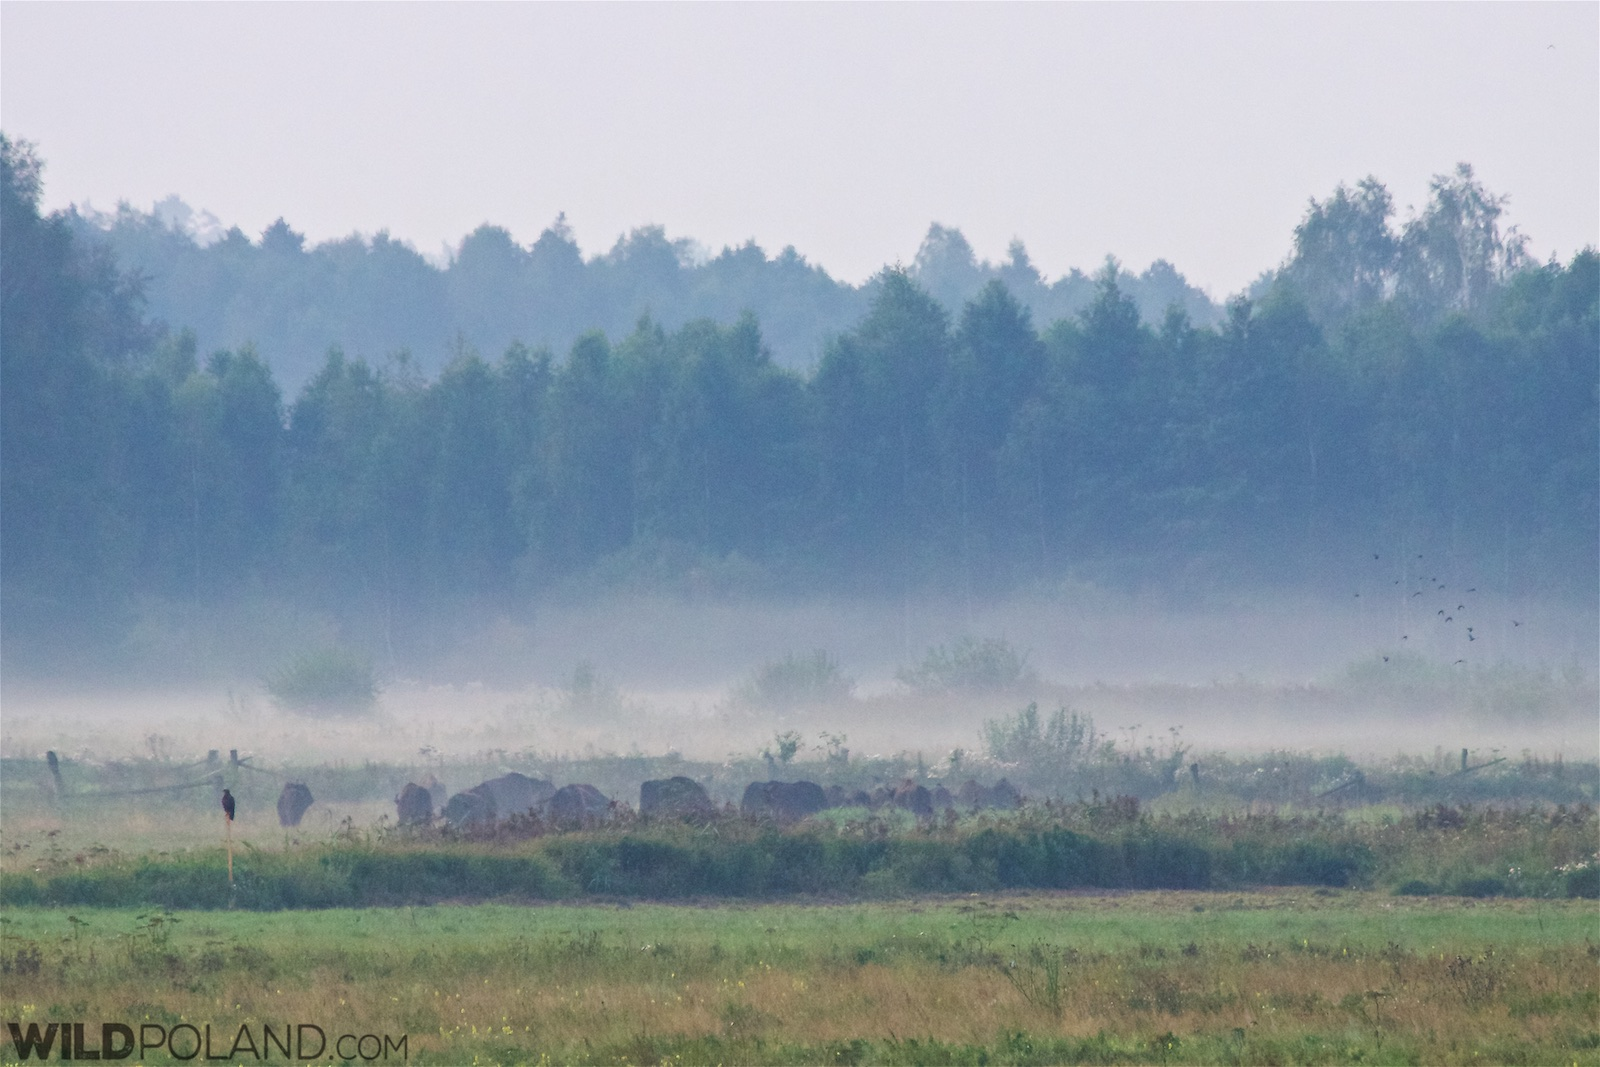 Bison Safari With Wild Poland Short Video